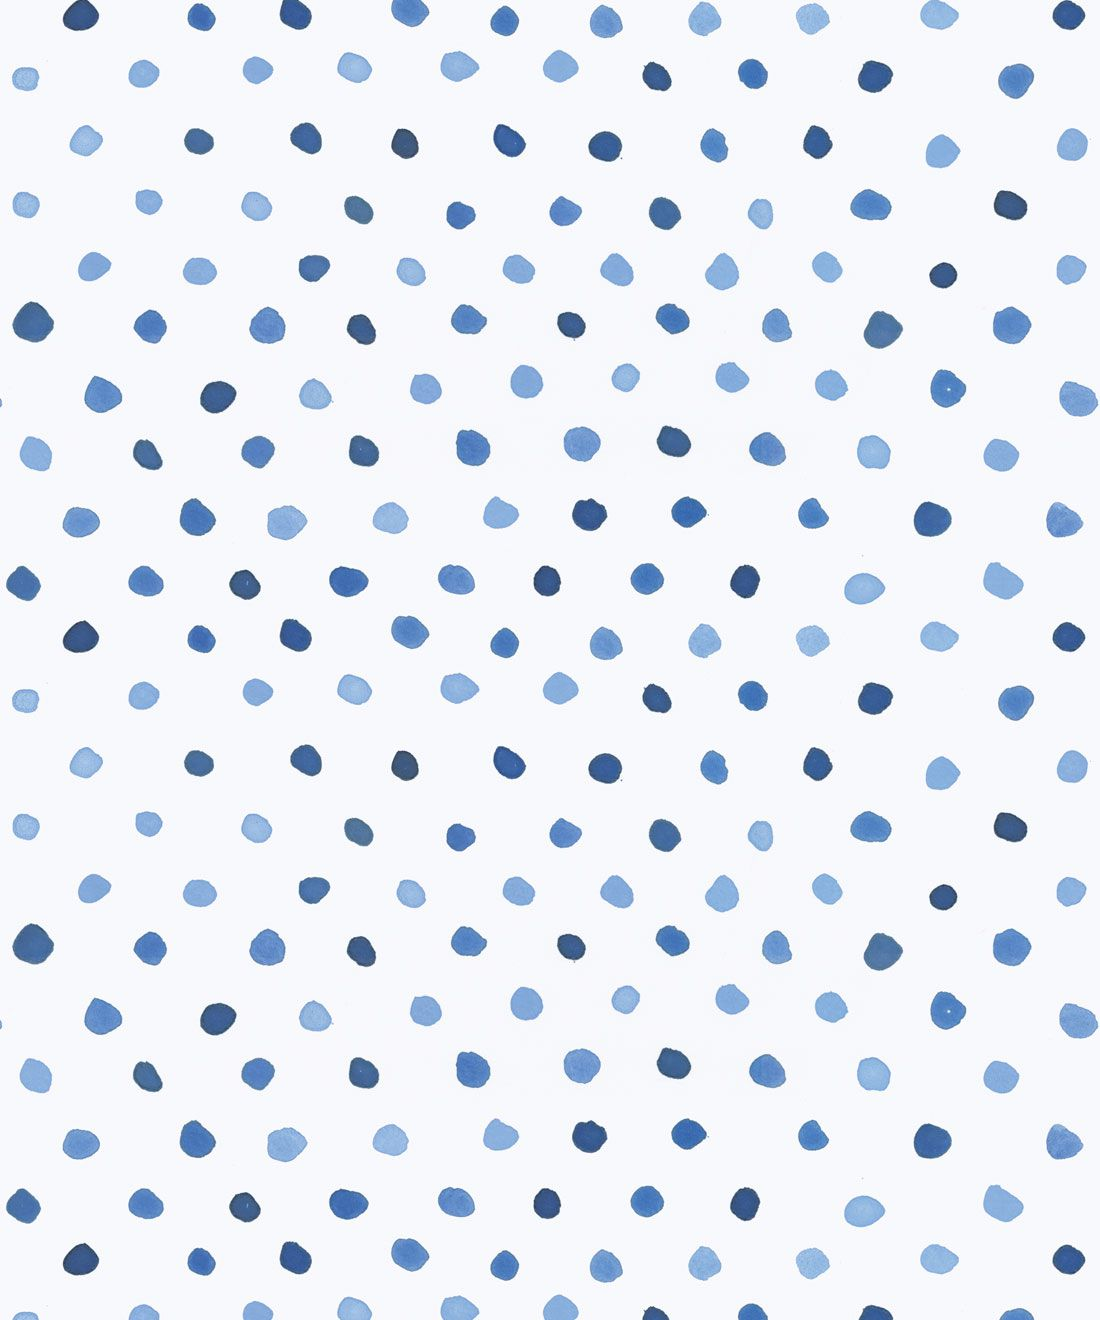 Dibba Dots Wallpaper